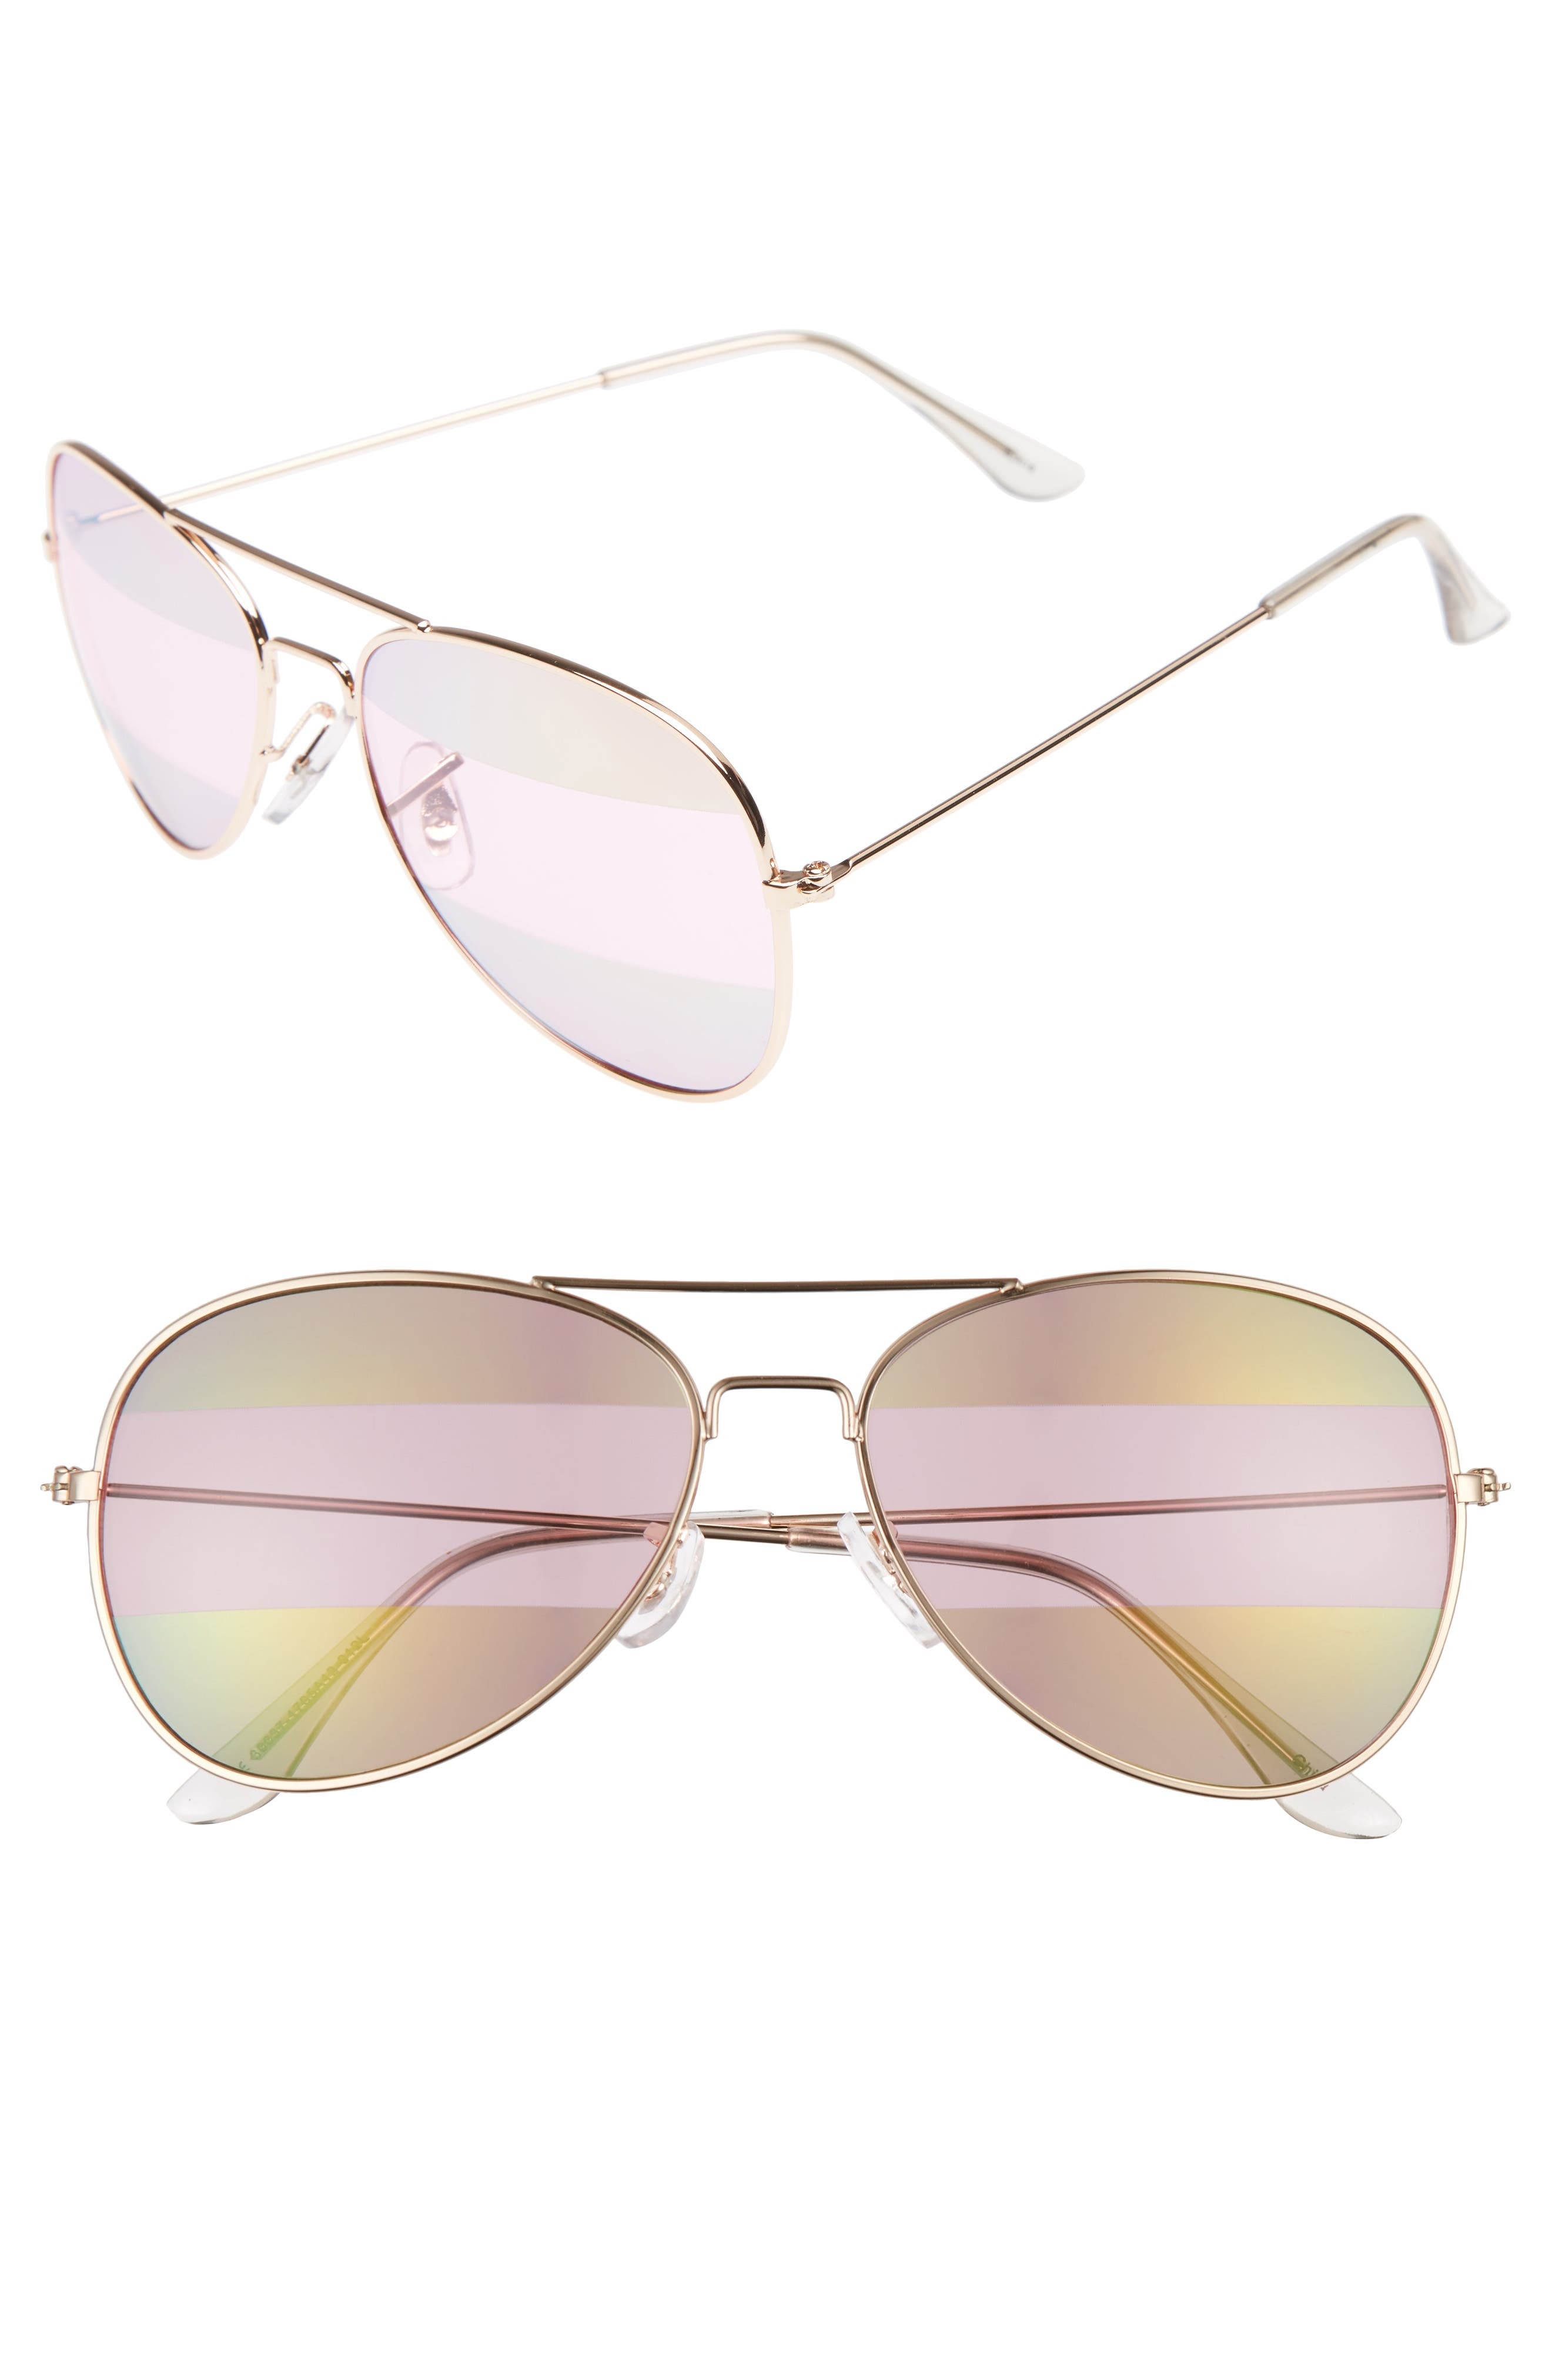 Main Image - BP. 56mm Two-Tone Aviator Sunglasses